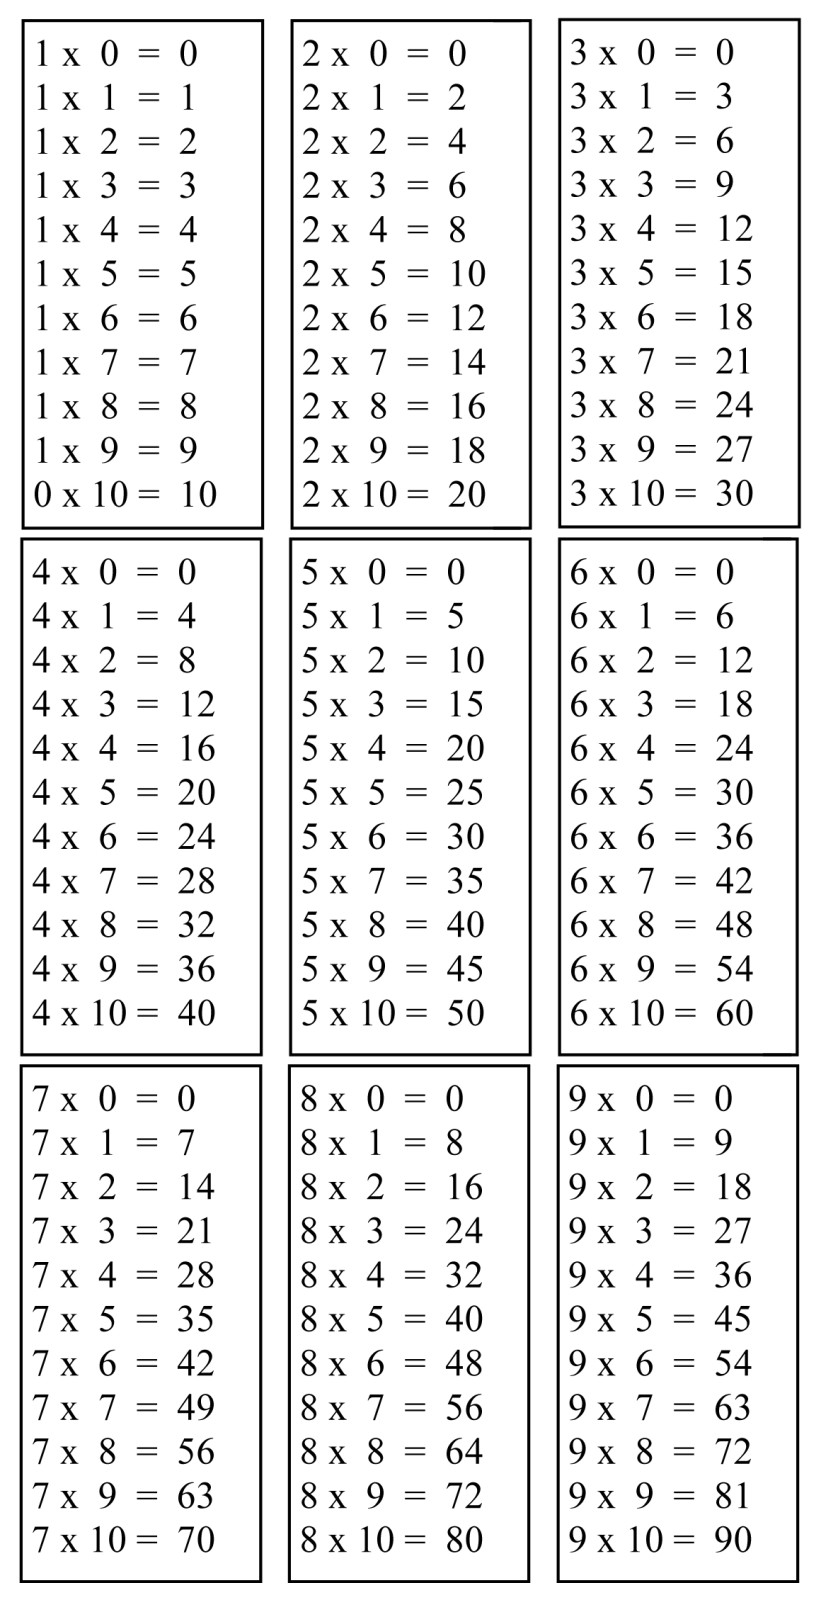 Comment apprendre les tables de multiplication facilement - Apprentissage table de multiplication ...